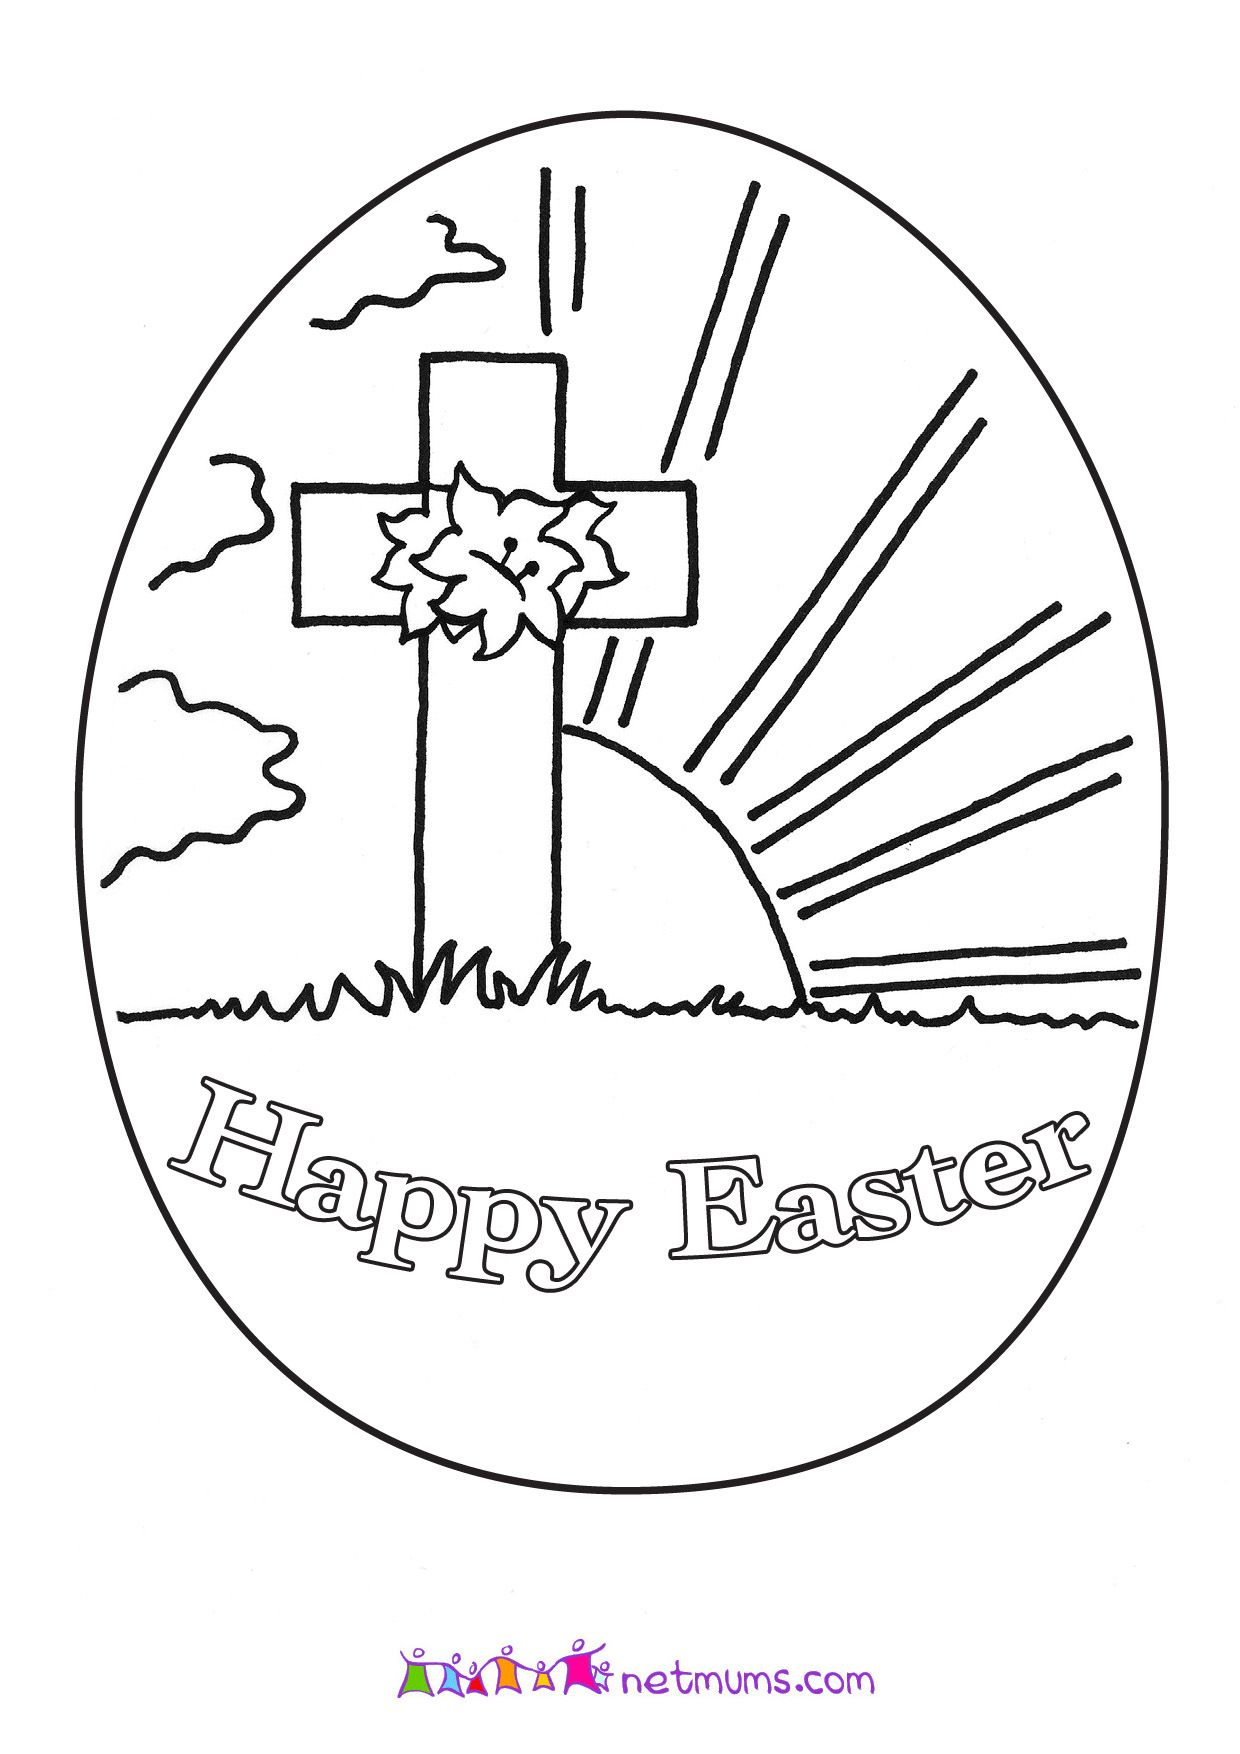 Easter Coloring Pages Religious | Kids Coloring Page | Holiday ...